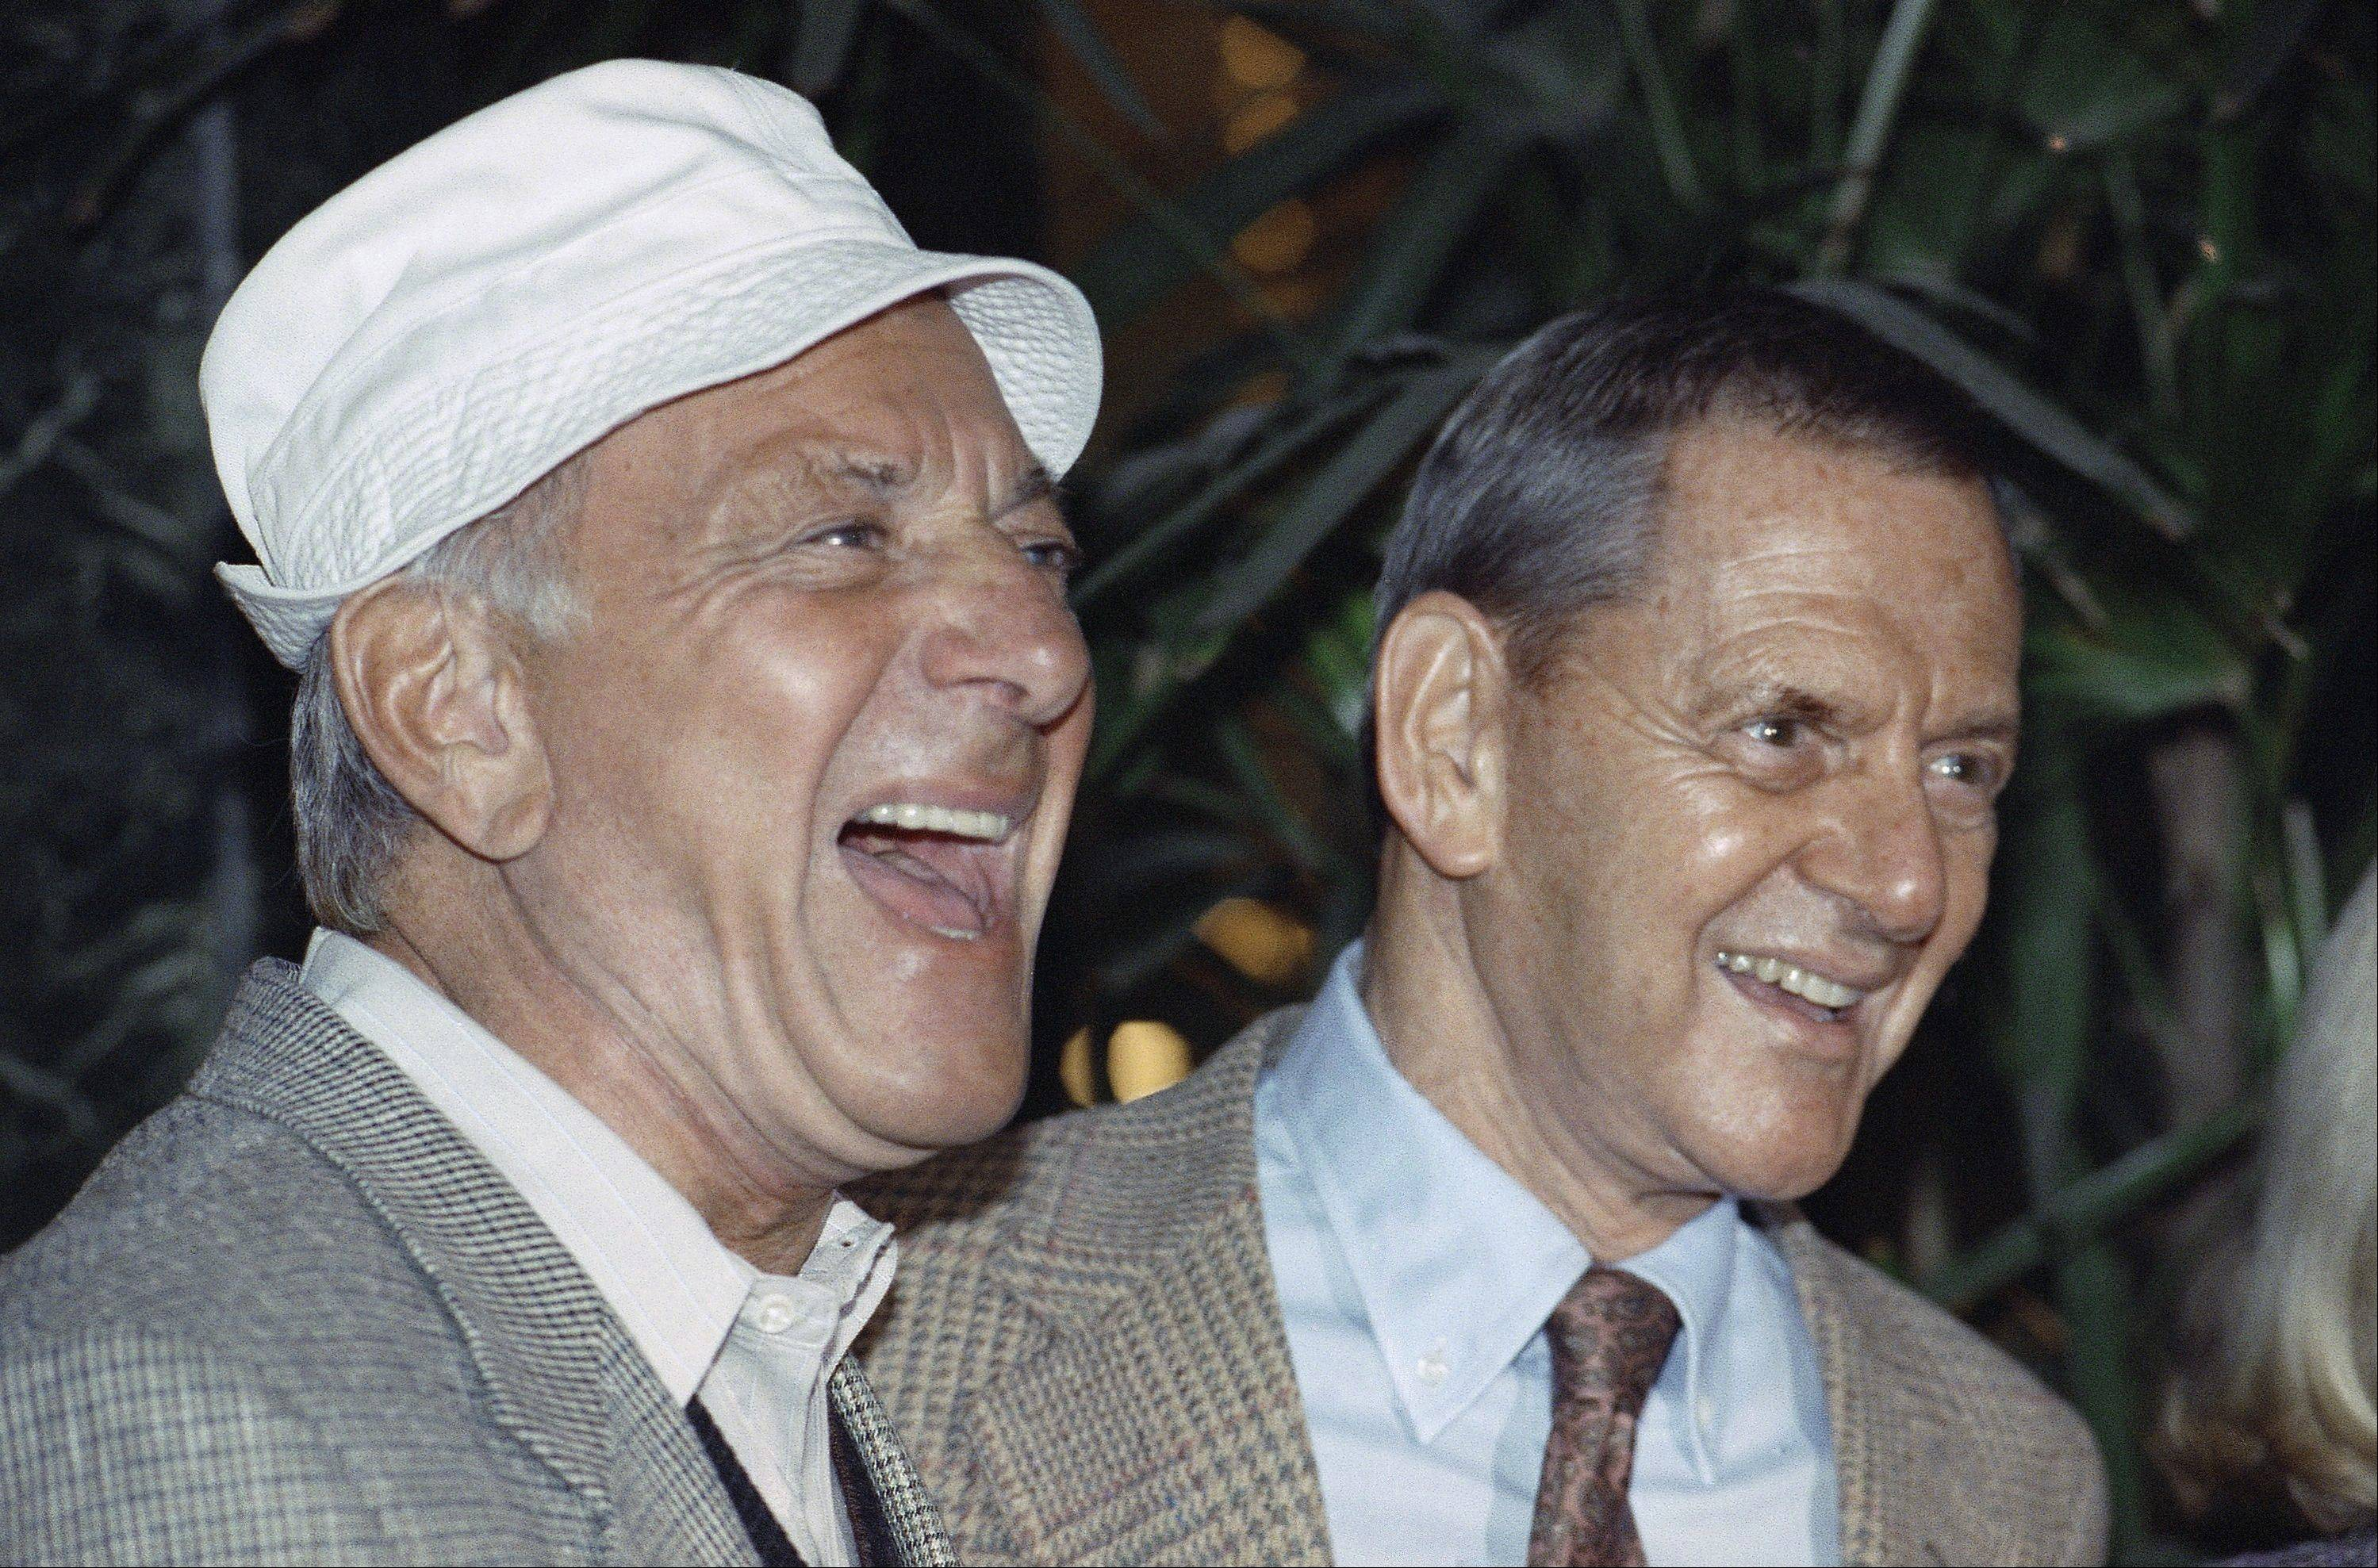 "In this Dec. 3, 1992 file photo, Jack Klugman, left, and Tony Randall laugh at a news conference announcing that they will reprise their most famous roles as Oscar Madison and Felix Unger respectively, for a one-night benefit performance of Neil Simons play, ""The Odd Couple"", in Beverly Hills, Calif. Klugman, the prolific, craggy-faced character actor and regular guy who was loved by millions as the messy one in TV's ""The Odd Couple"" and the crime-fighting coroner in ""Quincy, M.E.,"" died Monday, a son said. He was 90."